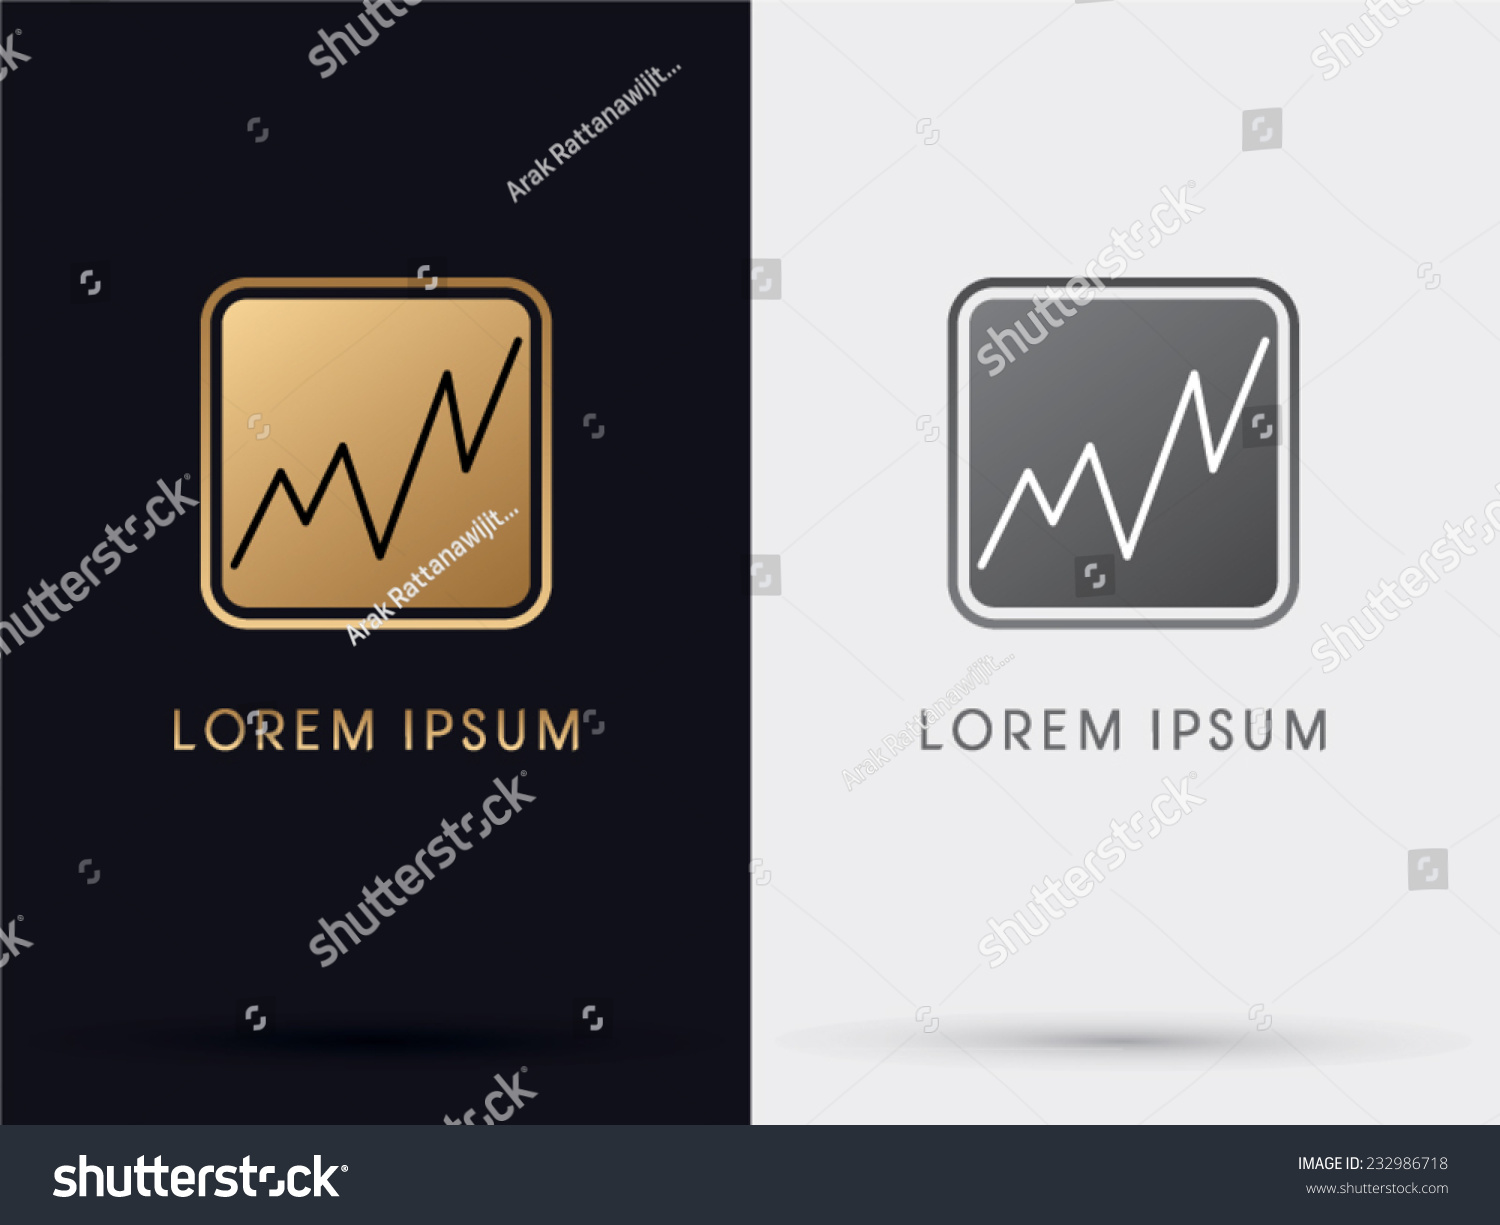 Gold business graph stock market symbol stock vector 232986718 gold business graph stock market symbol logo vector biocorpaavc Images